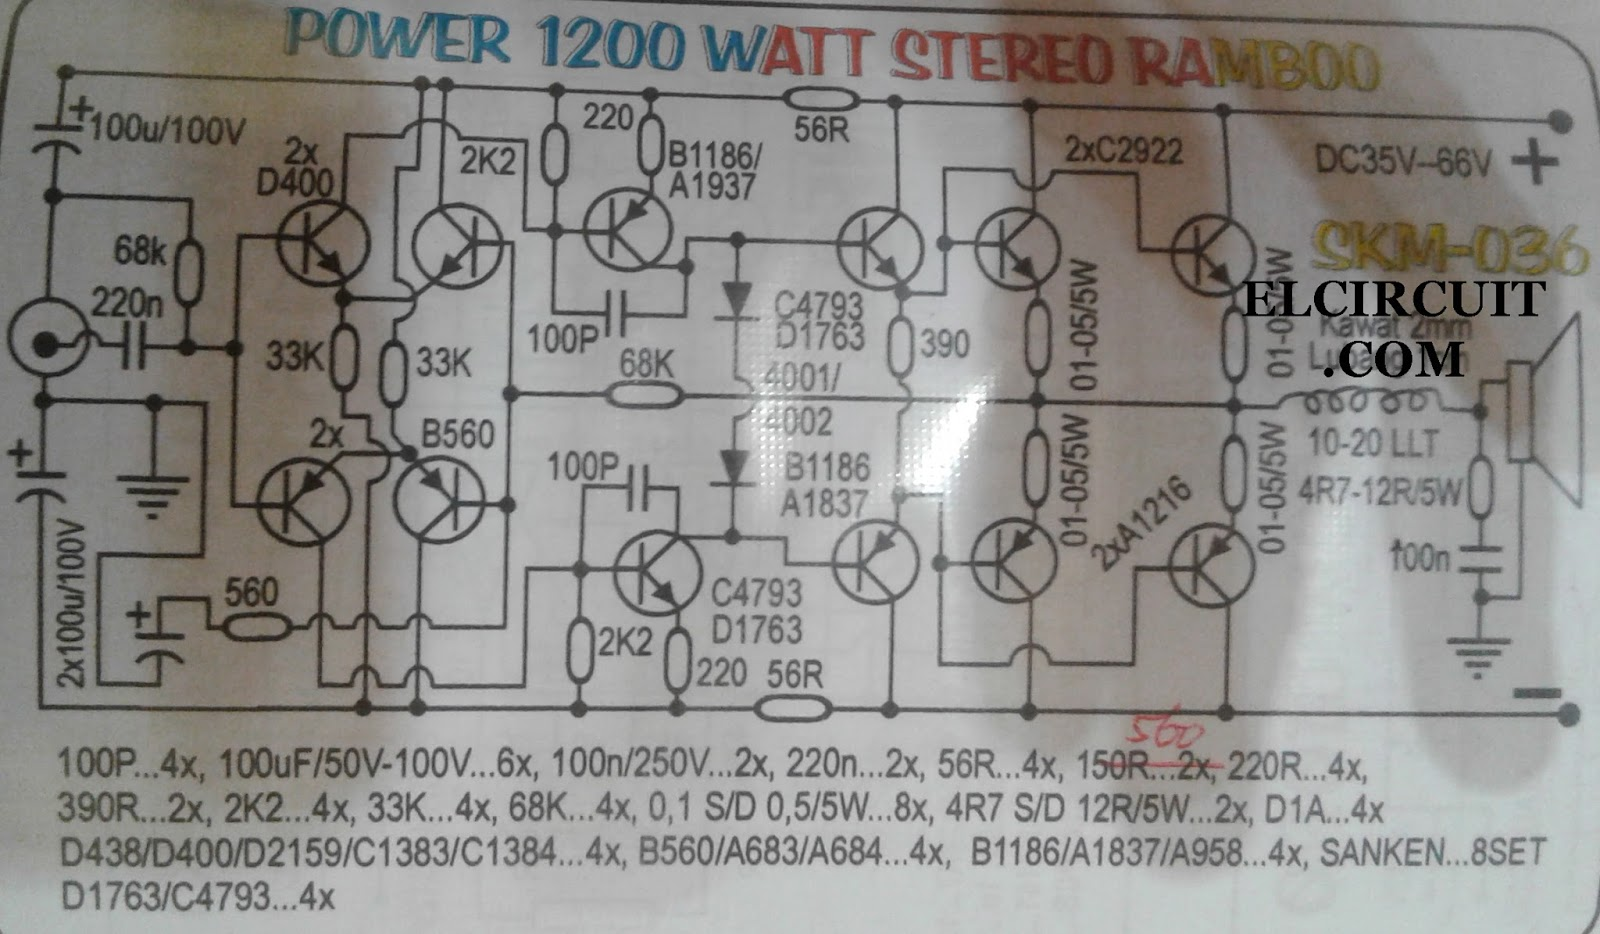 1200w High Power Amplifier 2sa1216 And 2sc2922 Electronic Circuit 400w Mosfet Schematic Diagram Component List